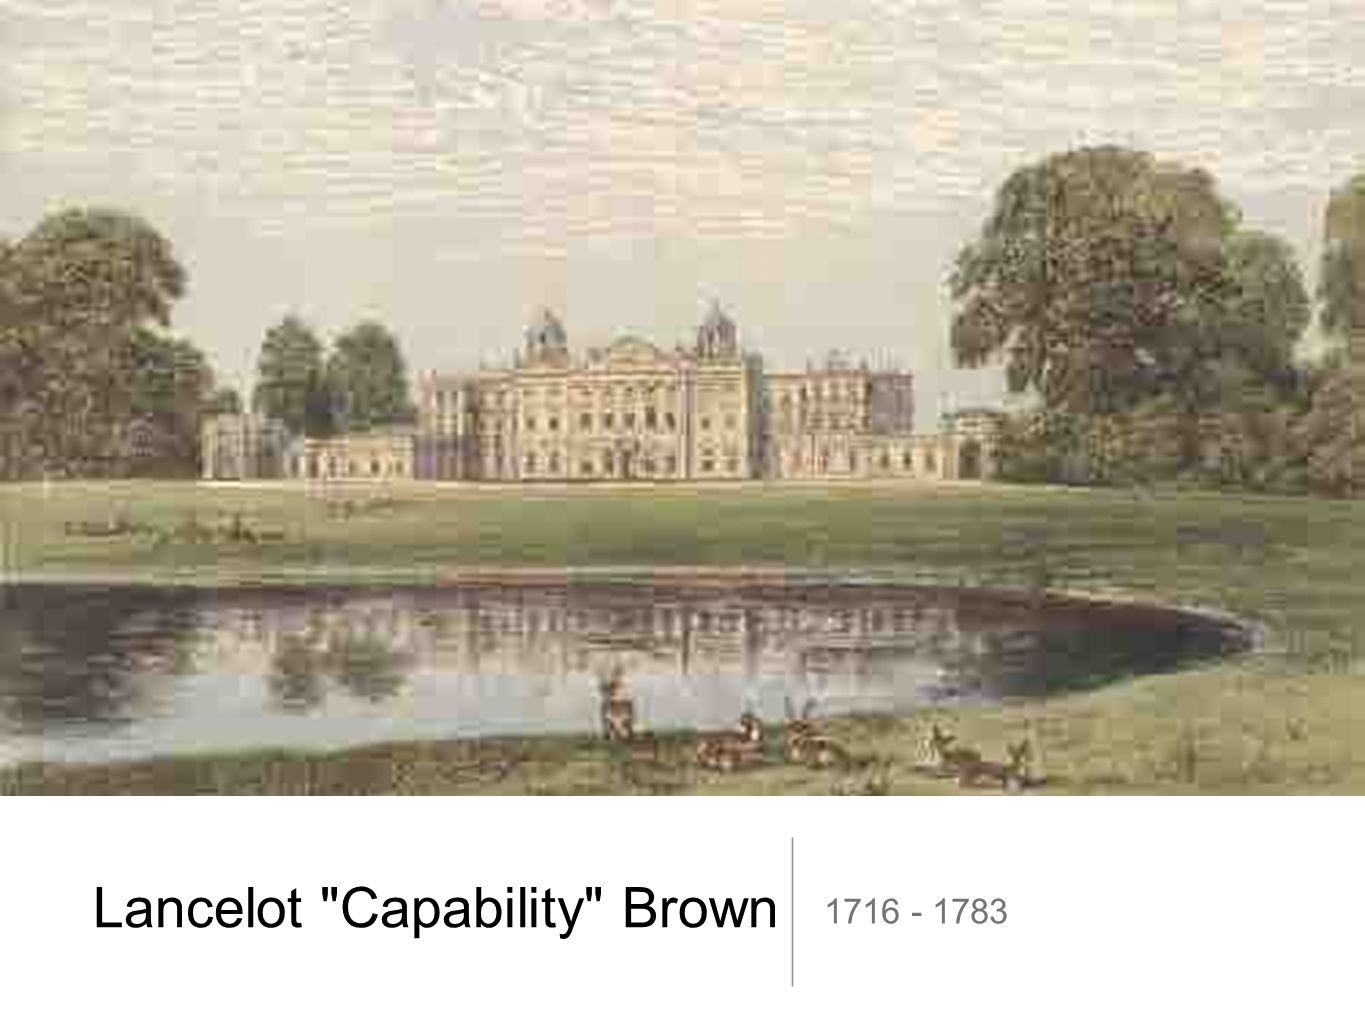 Lancelot Capability Brown 1716 - 1783